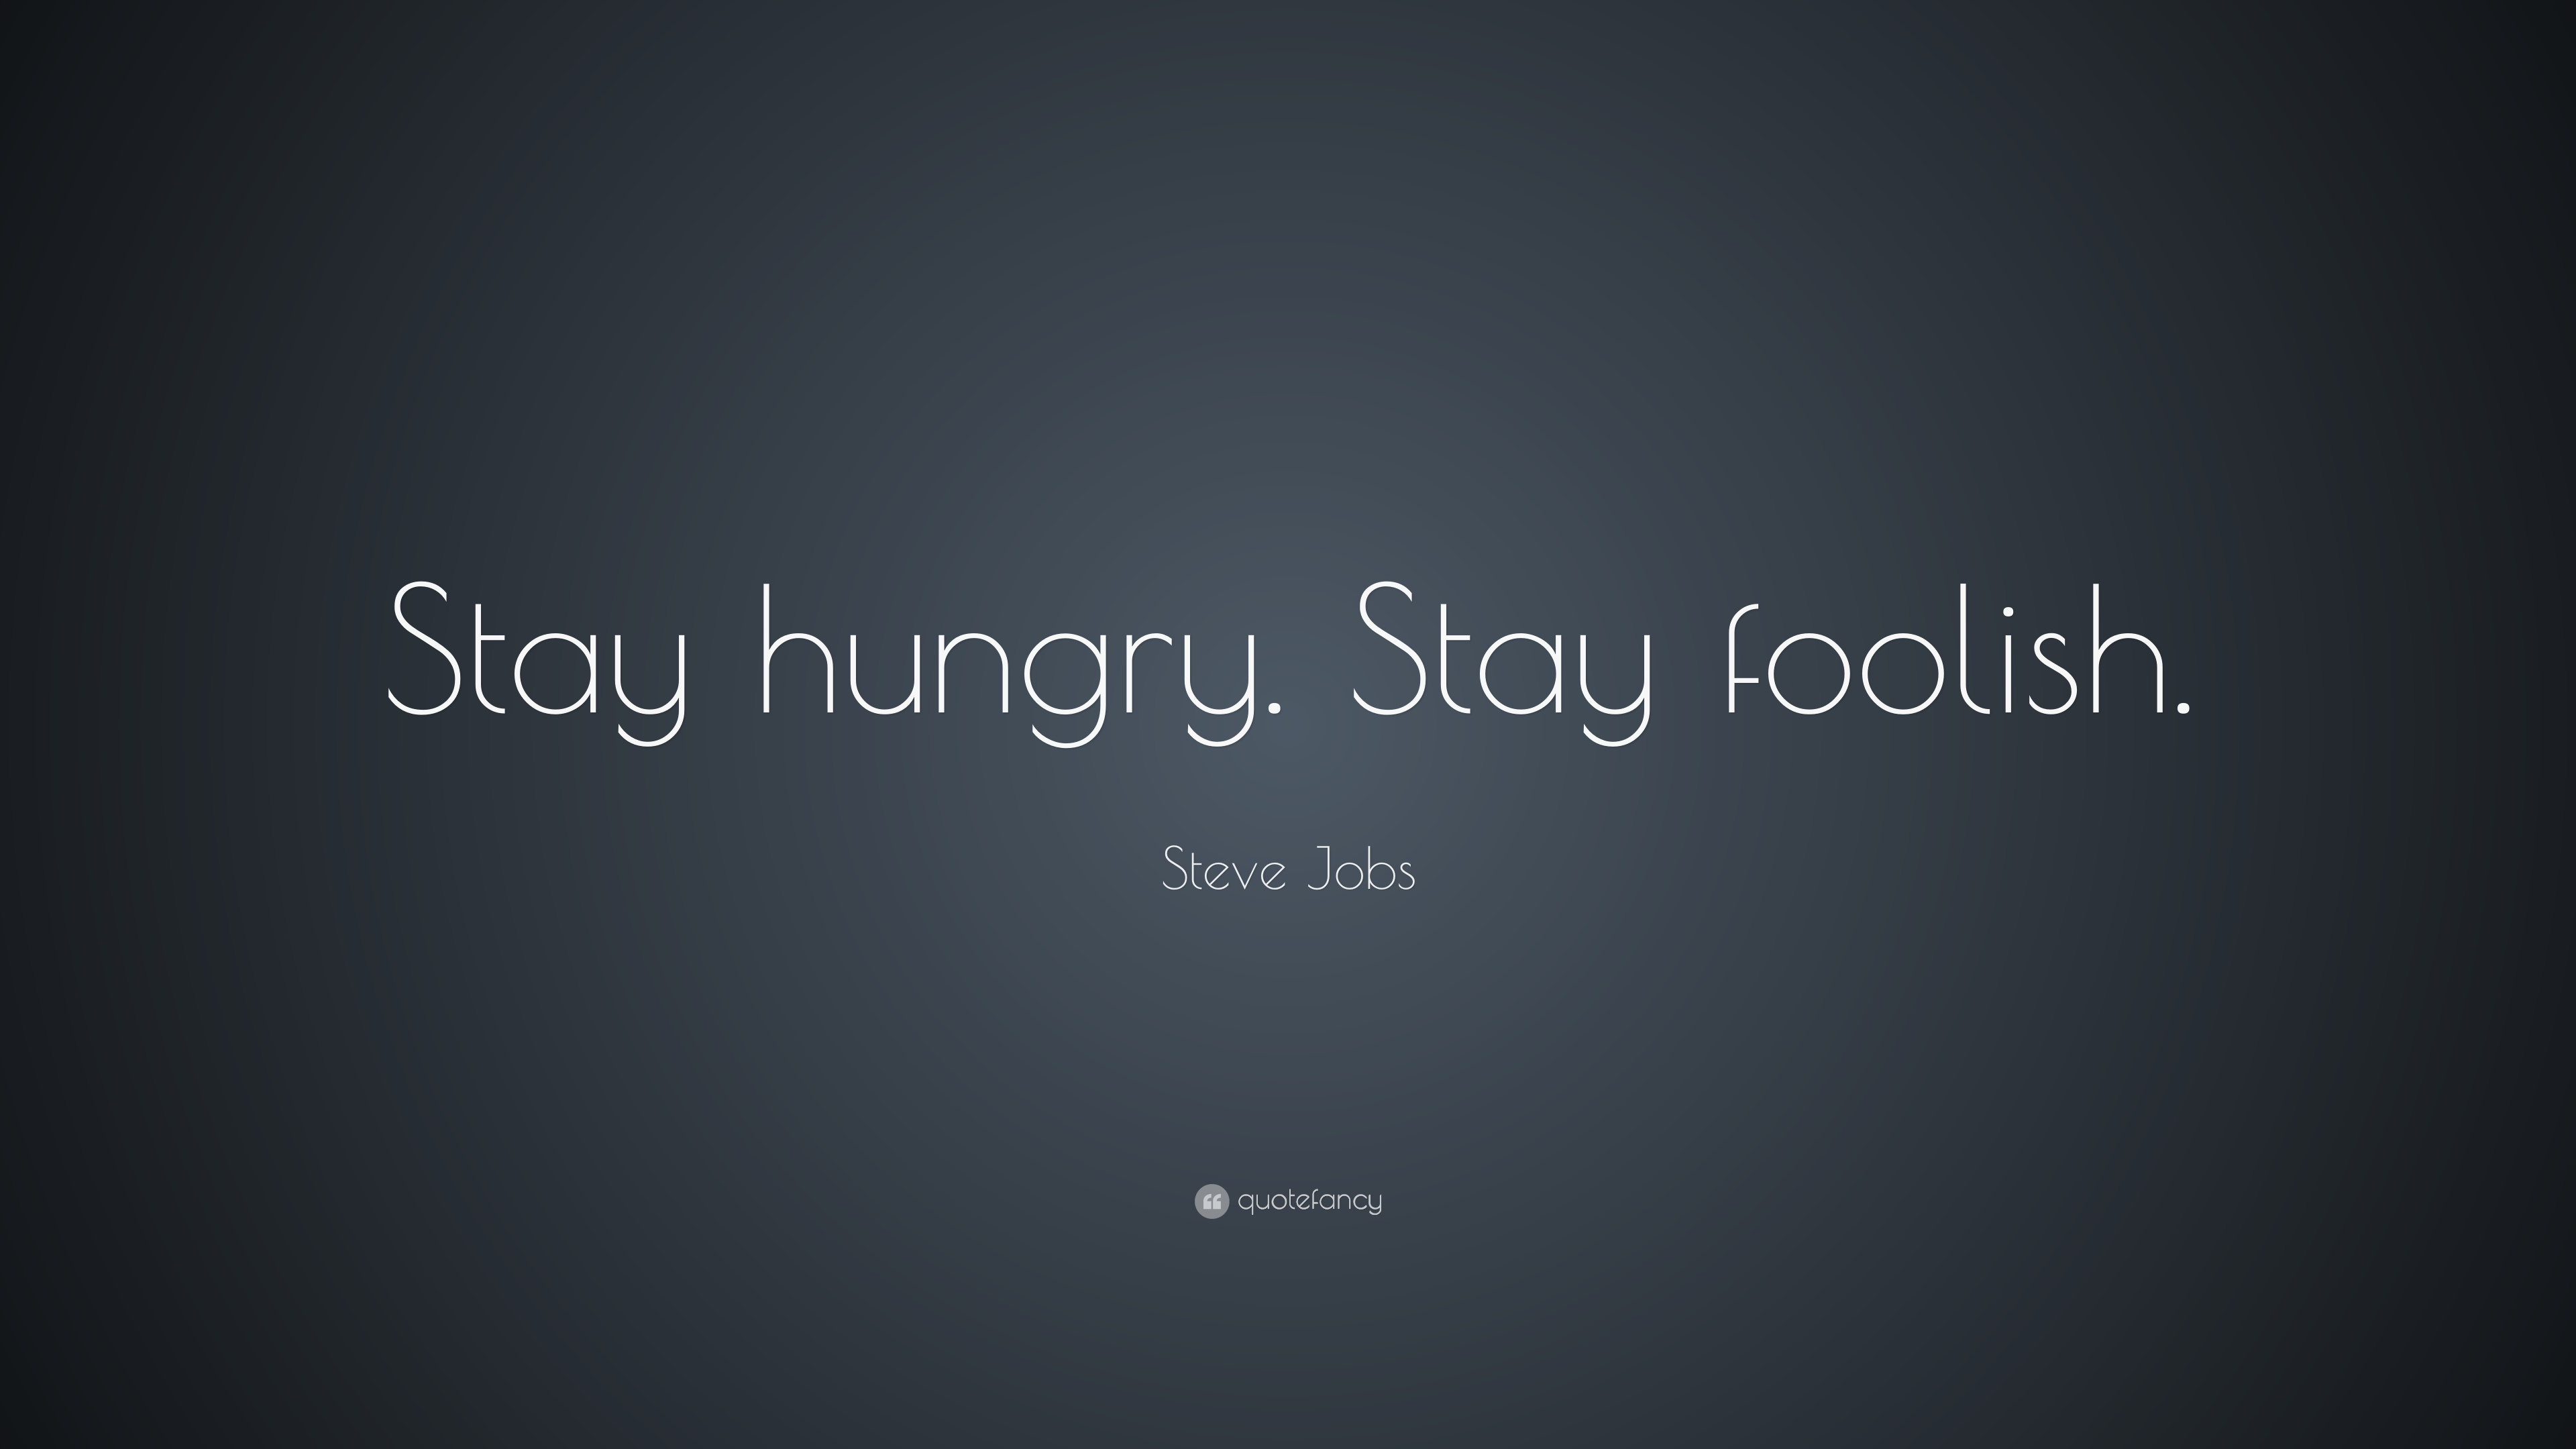 Workout Motivation Wallpaper Hd Steve Jobs Quote Stay Hungry Stay Foolish 41